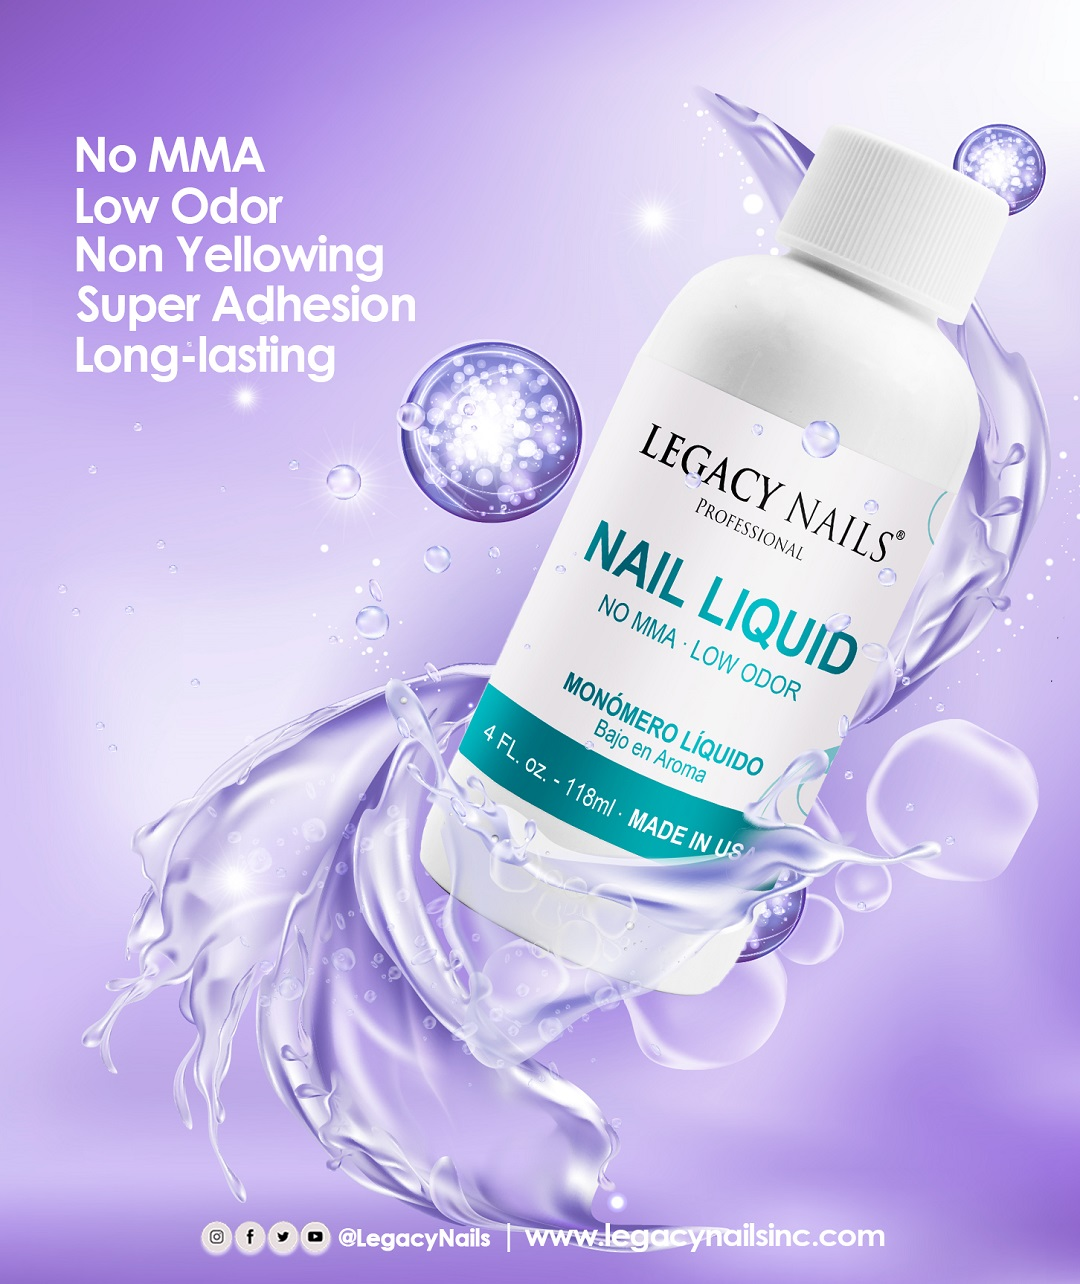 Nail Sculpting Liquid